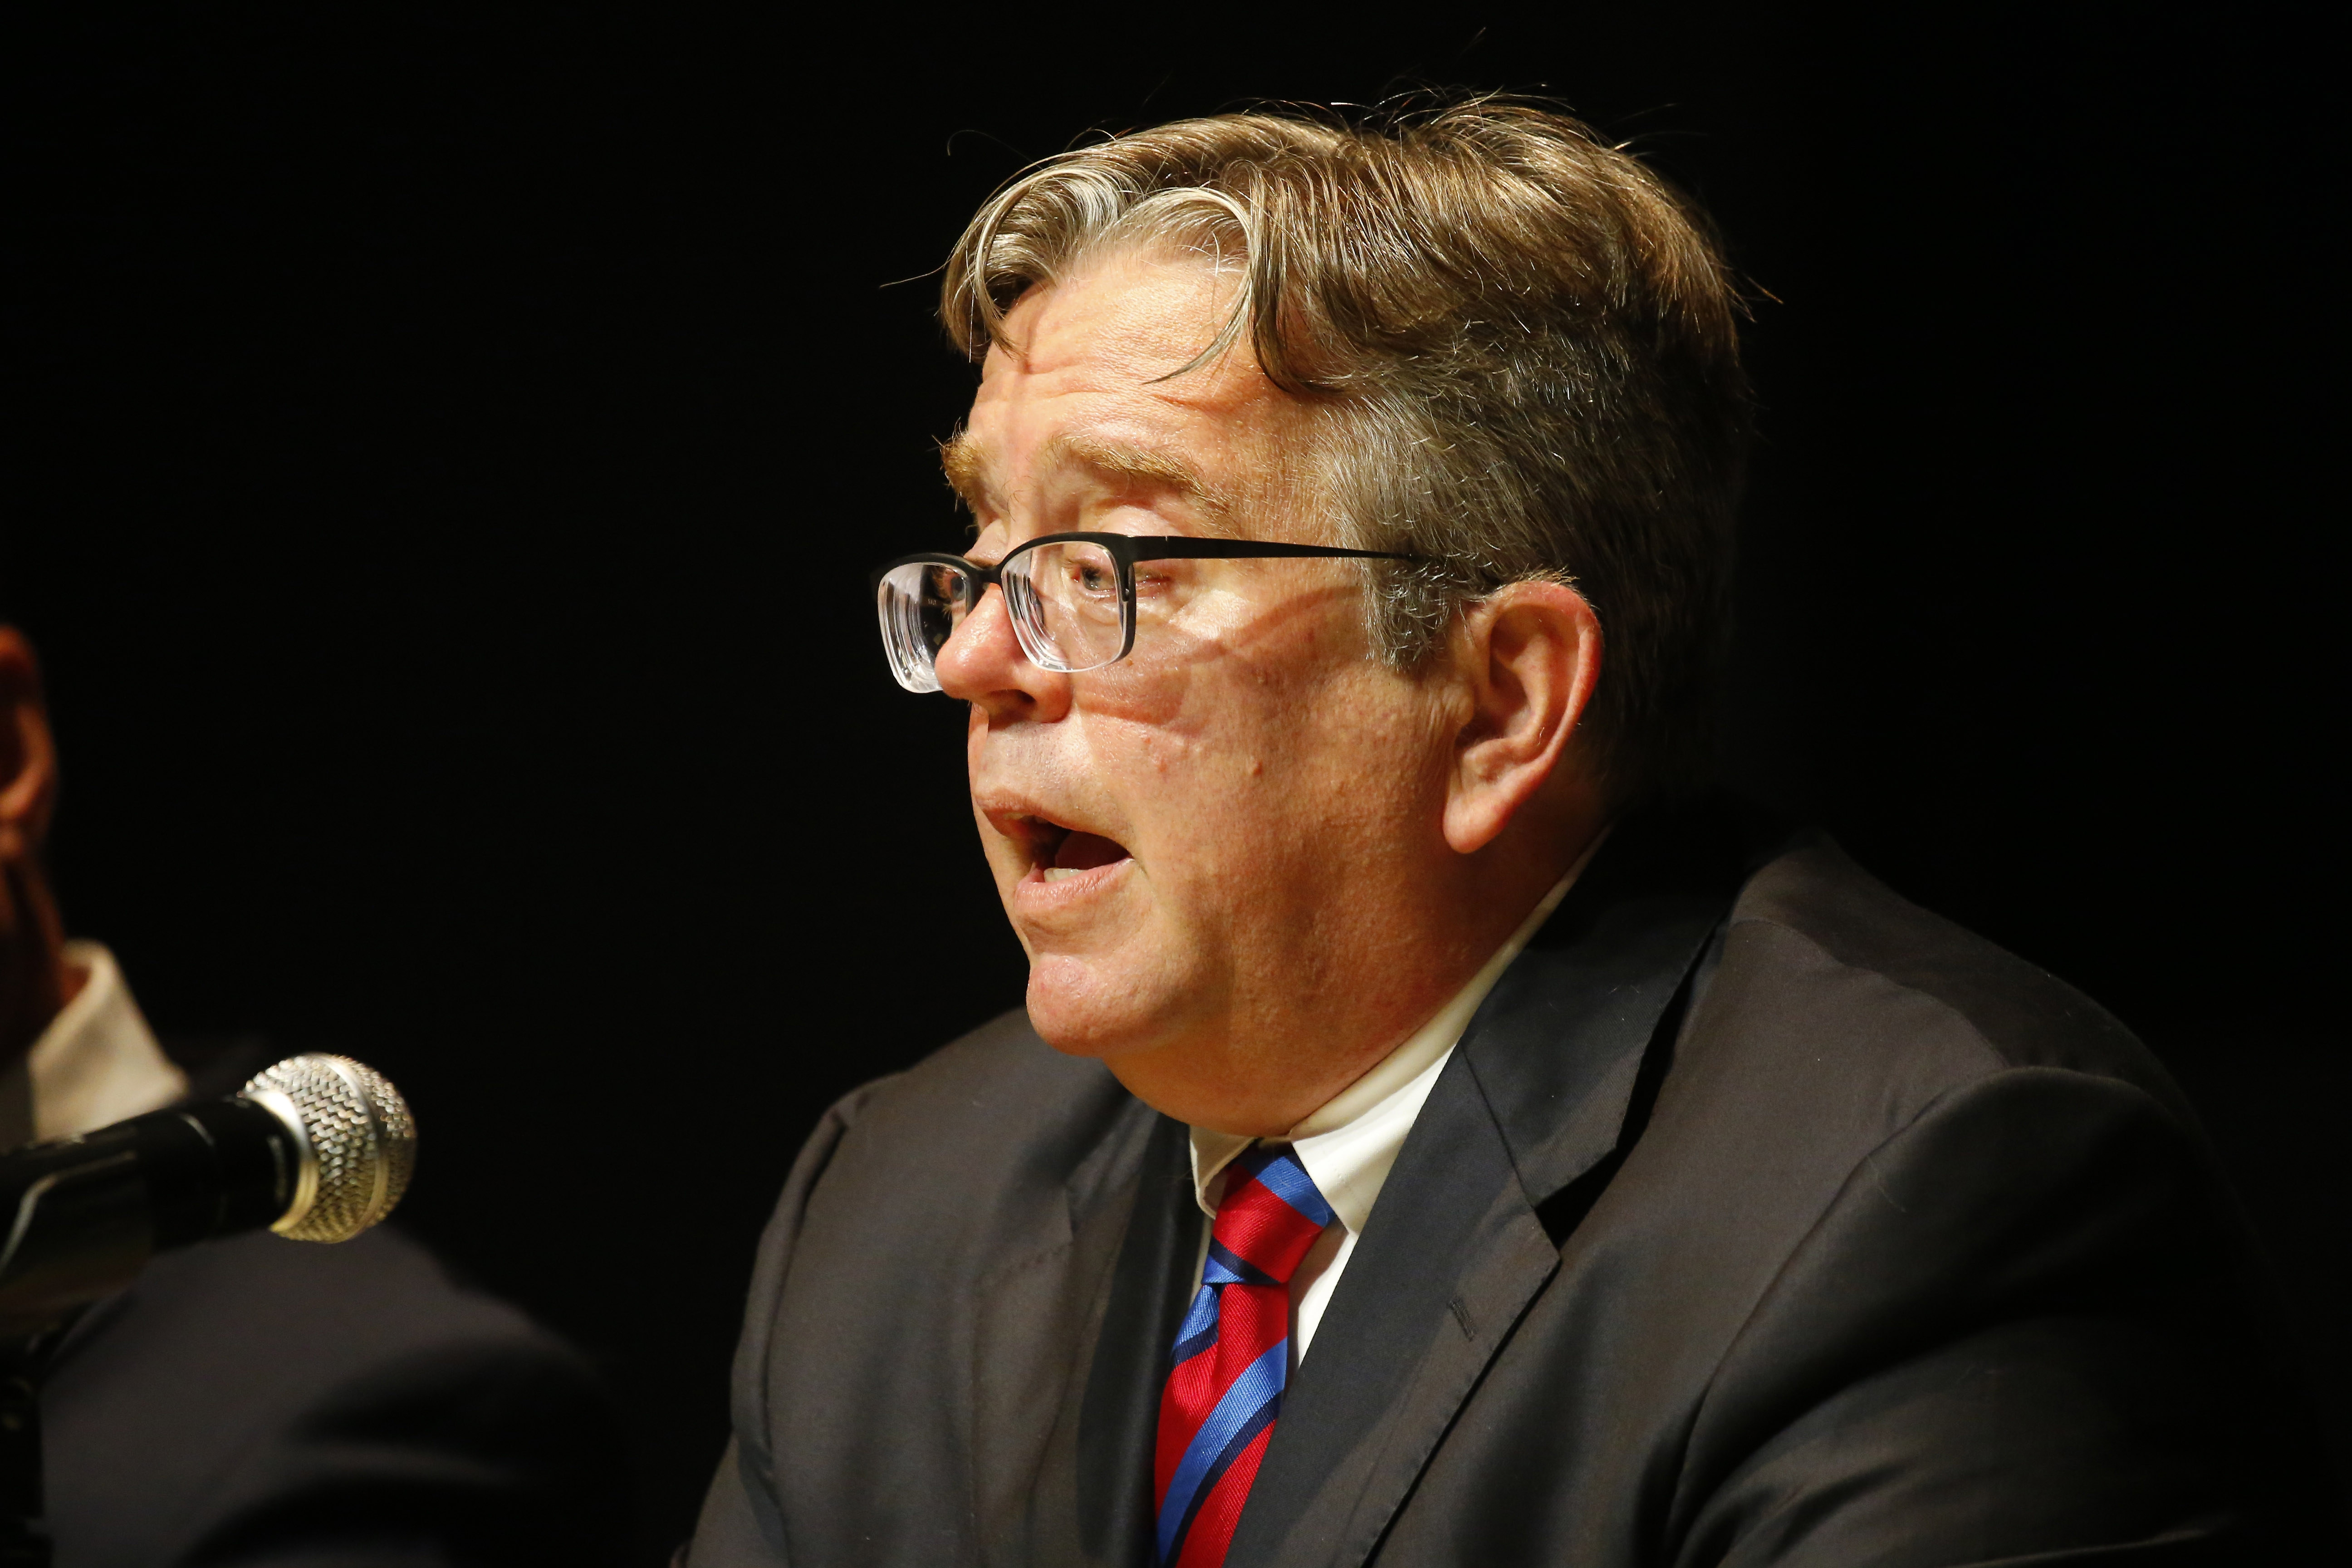 Candidate Mark A. Sacha speaks during a debate at the Burchfield Penney Arts Center in Buffalo, Thursday, Aug. 24, 2016. (Mark Mulville/Buffalo News)